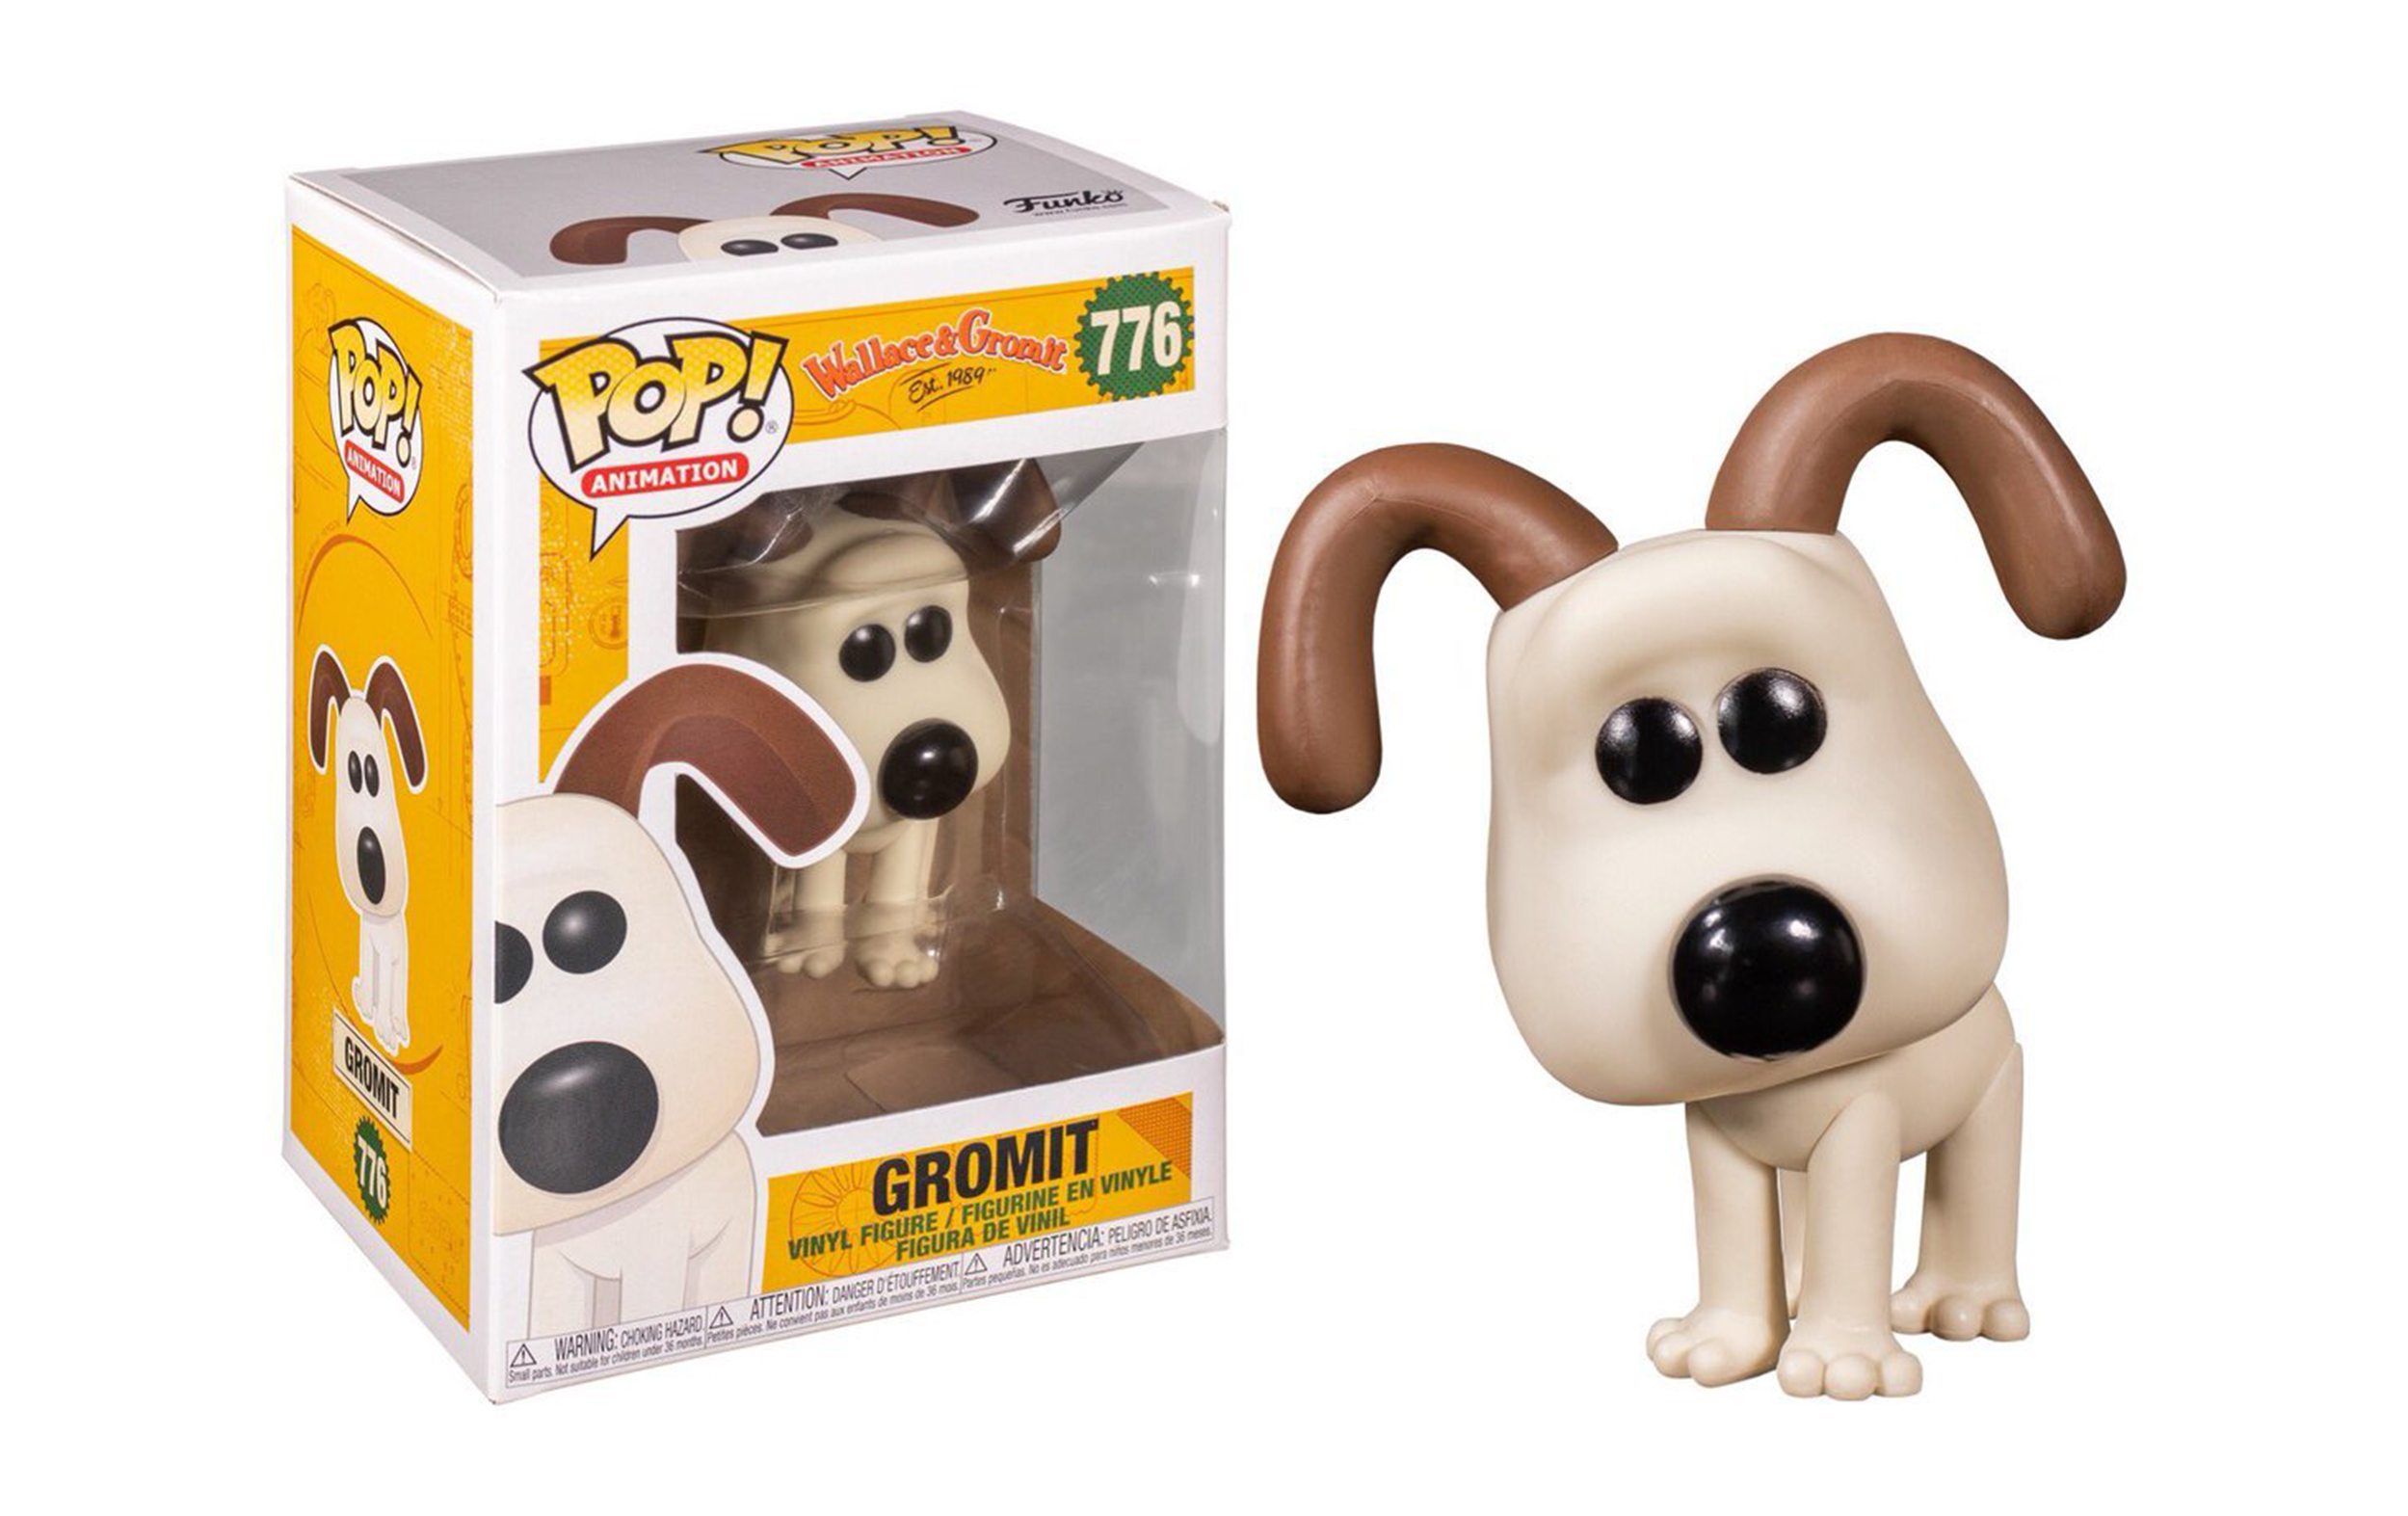 Wallace and Gromit Gromit 776 Funko POP Vinyl Figure